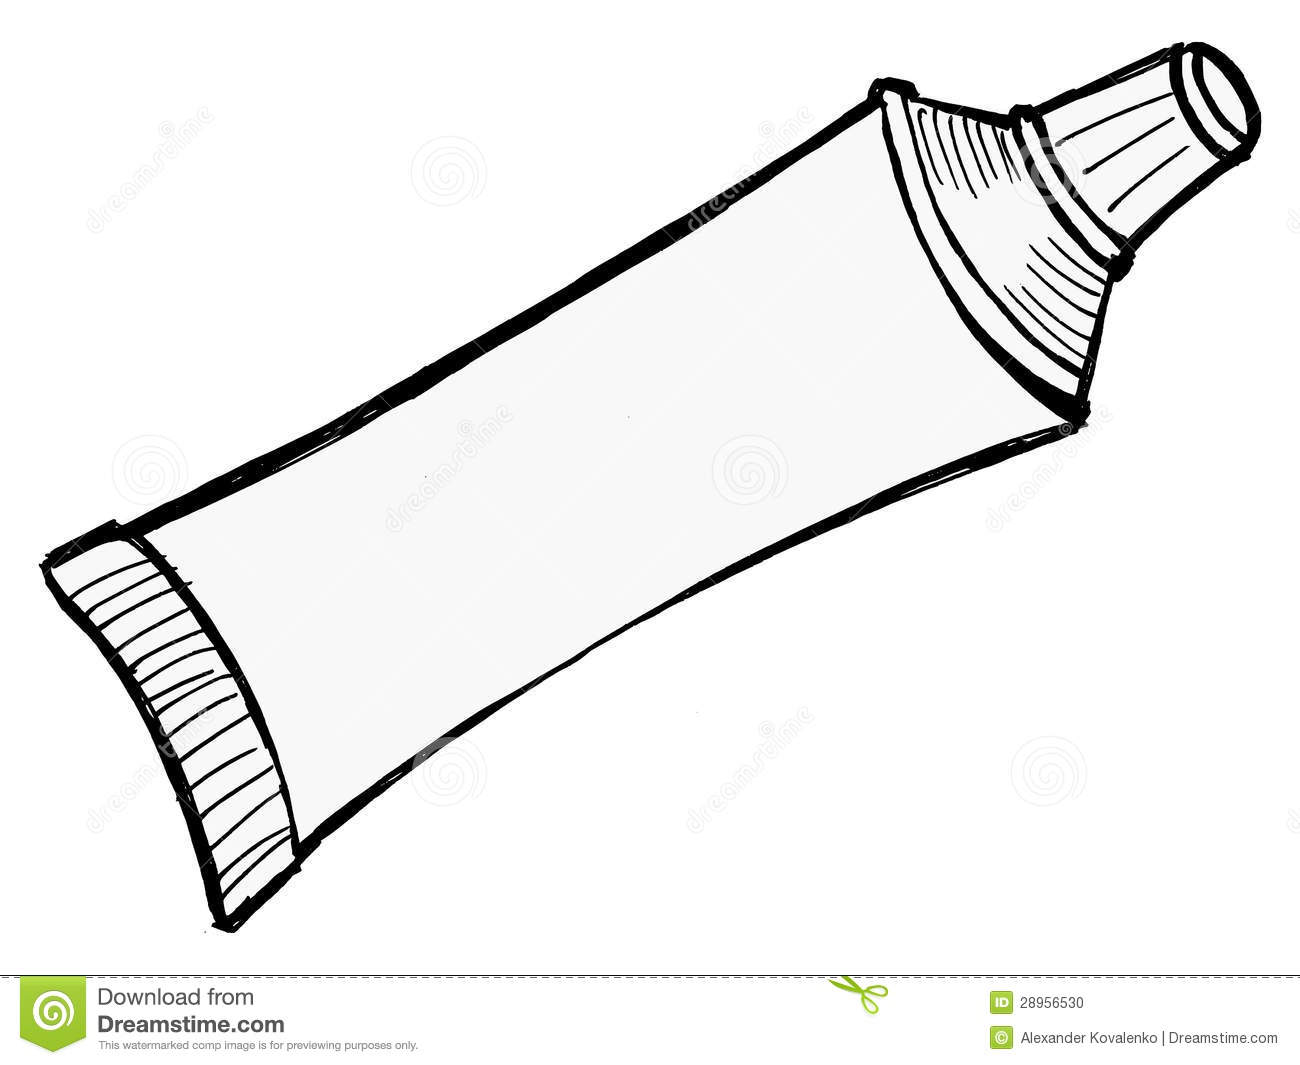 toothbrush clipart black and white - photo #40